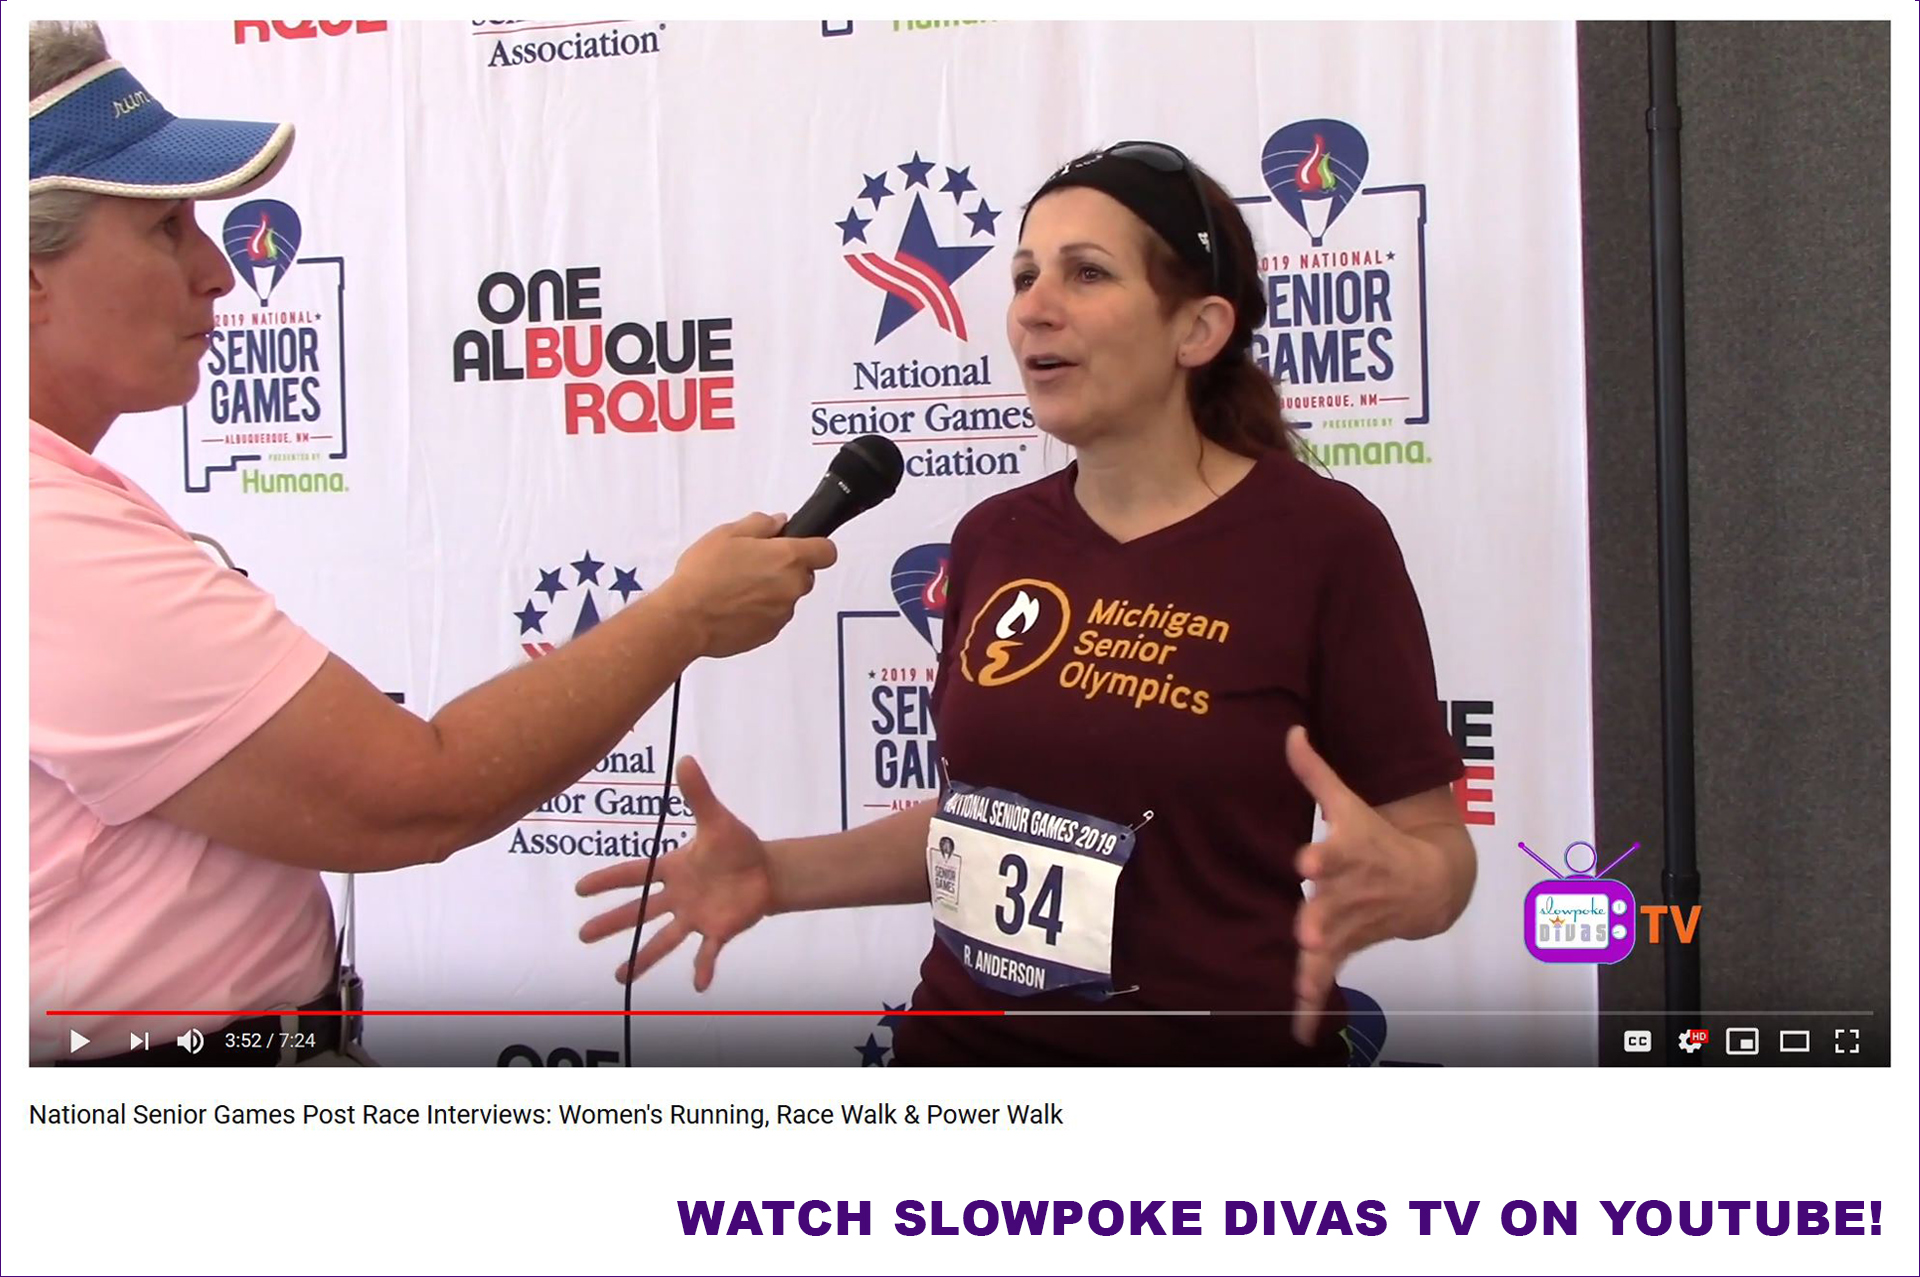 screenshot of 2019 National Senior Games race walker Roberta Anderson appearing on Slowpoke Divas TV